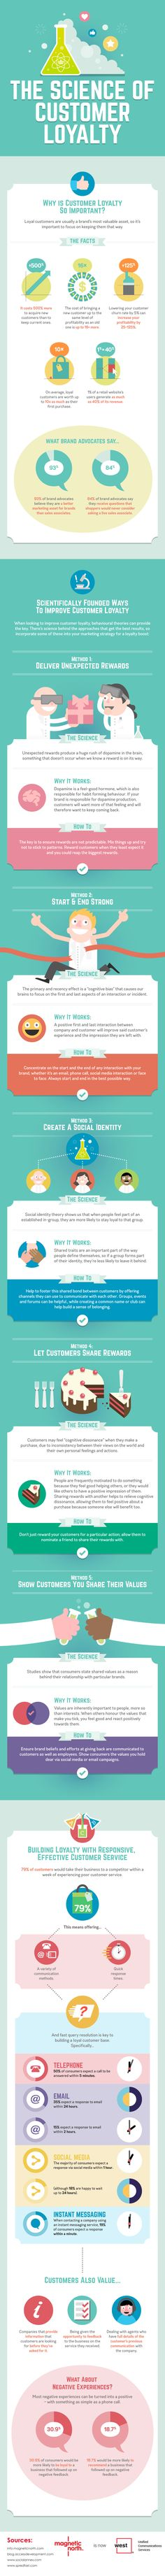 The Science of Customer Loyalty